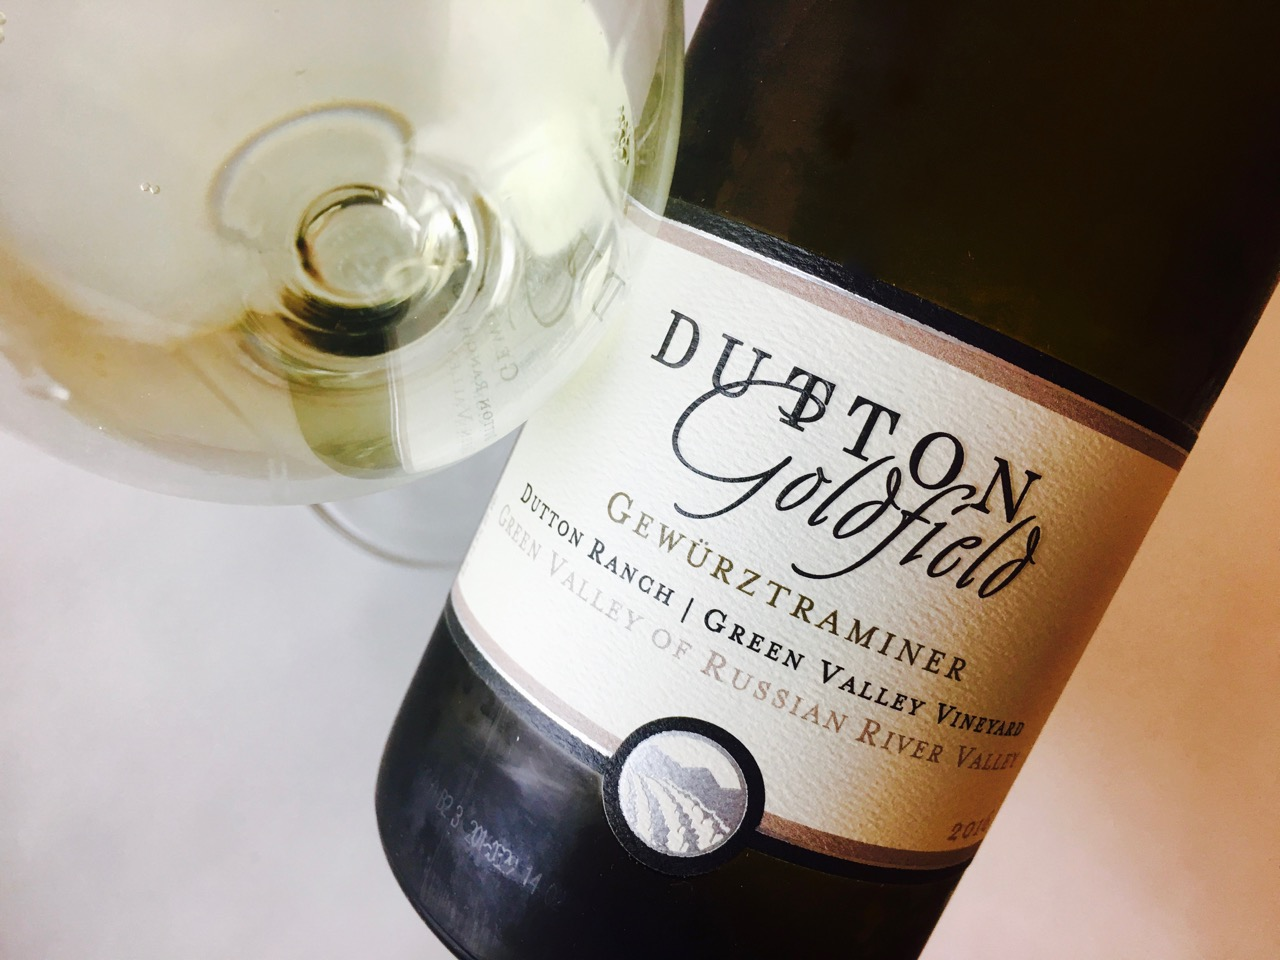 2016 Dutton Goldfield Gewürztraminer Green Valley